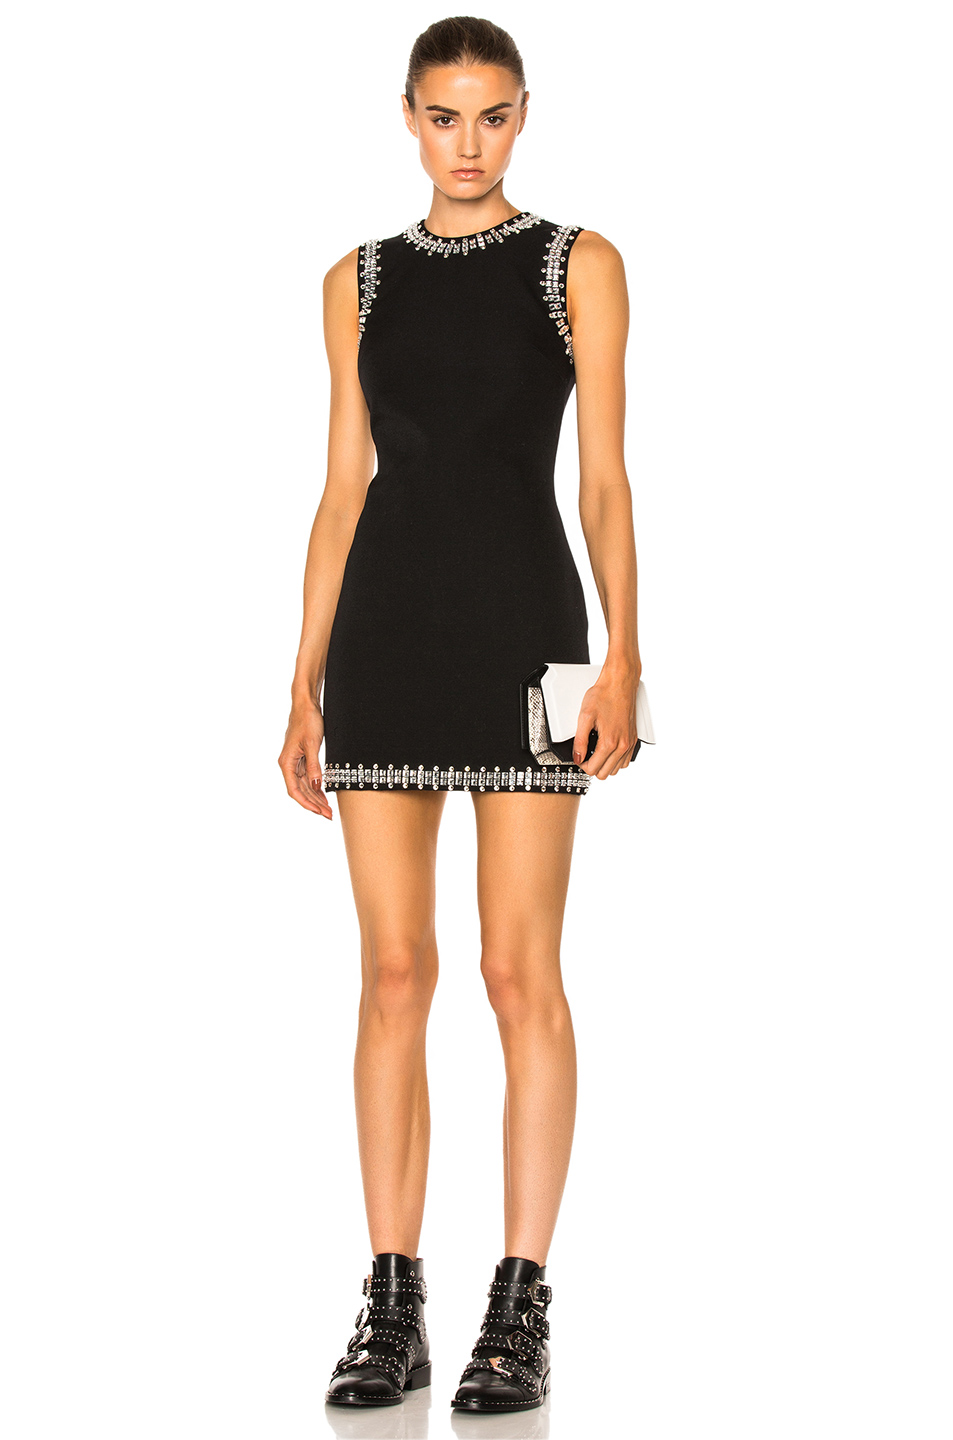 Givenchy Crystal Trim Dress in Black